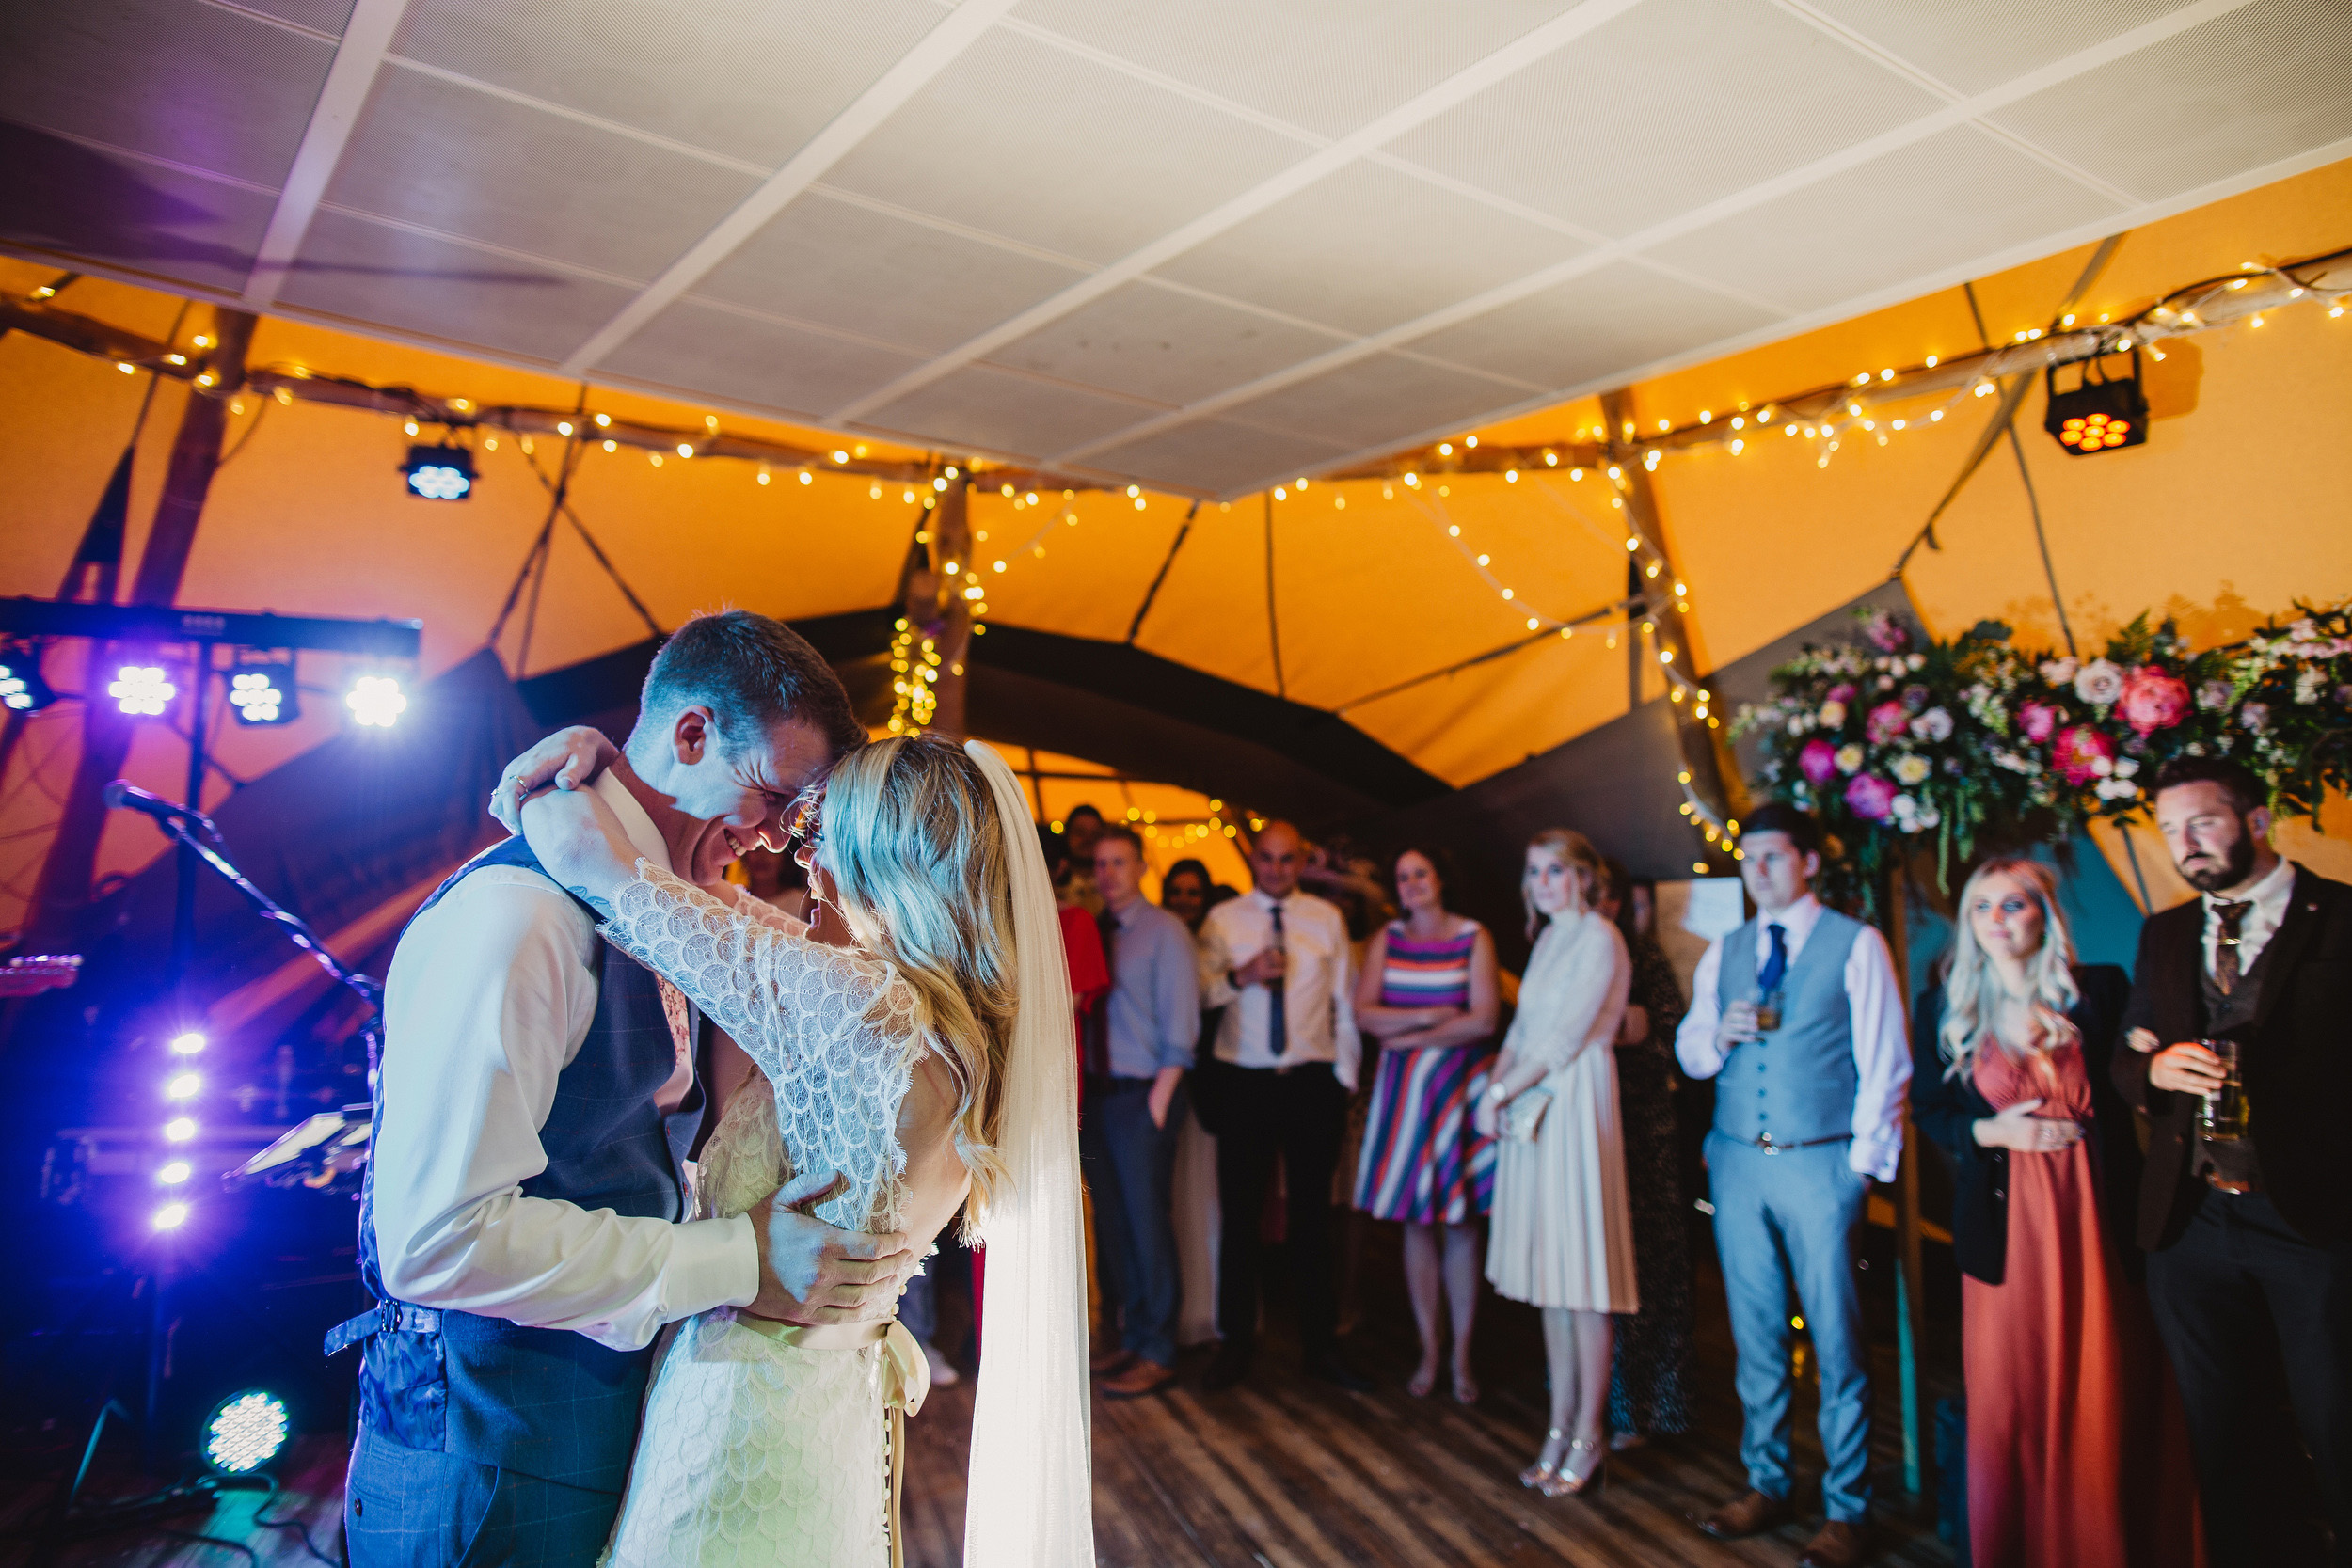 Gemma-Bohemian-Outdoor-Tipi-Wedding-Laid-Back-Relaxed-Family-Wedding-Kate-Beaumont-Astilbe-by-S6-Photography-Sheffield-56.jpg